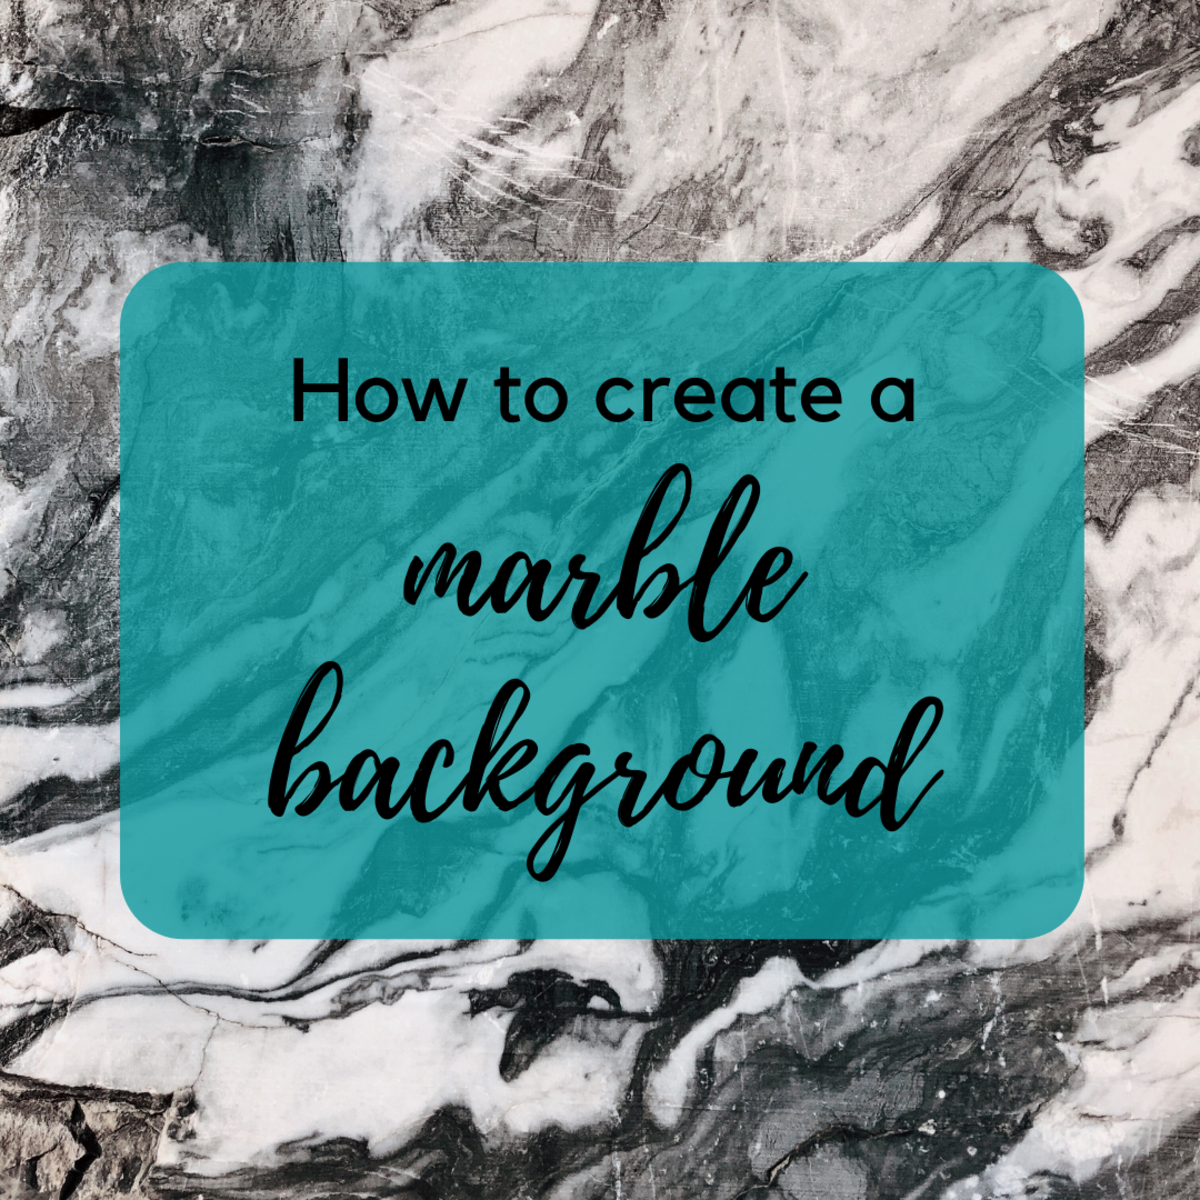 Learn how to create a marble background in Adobe Photoshop